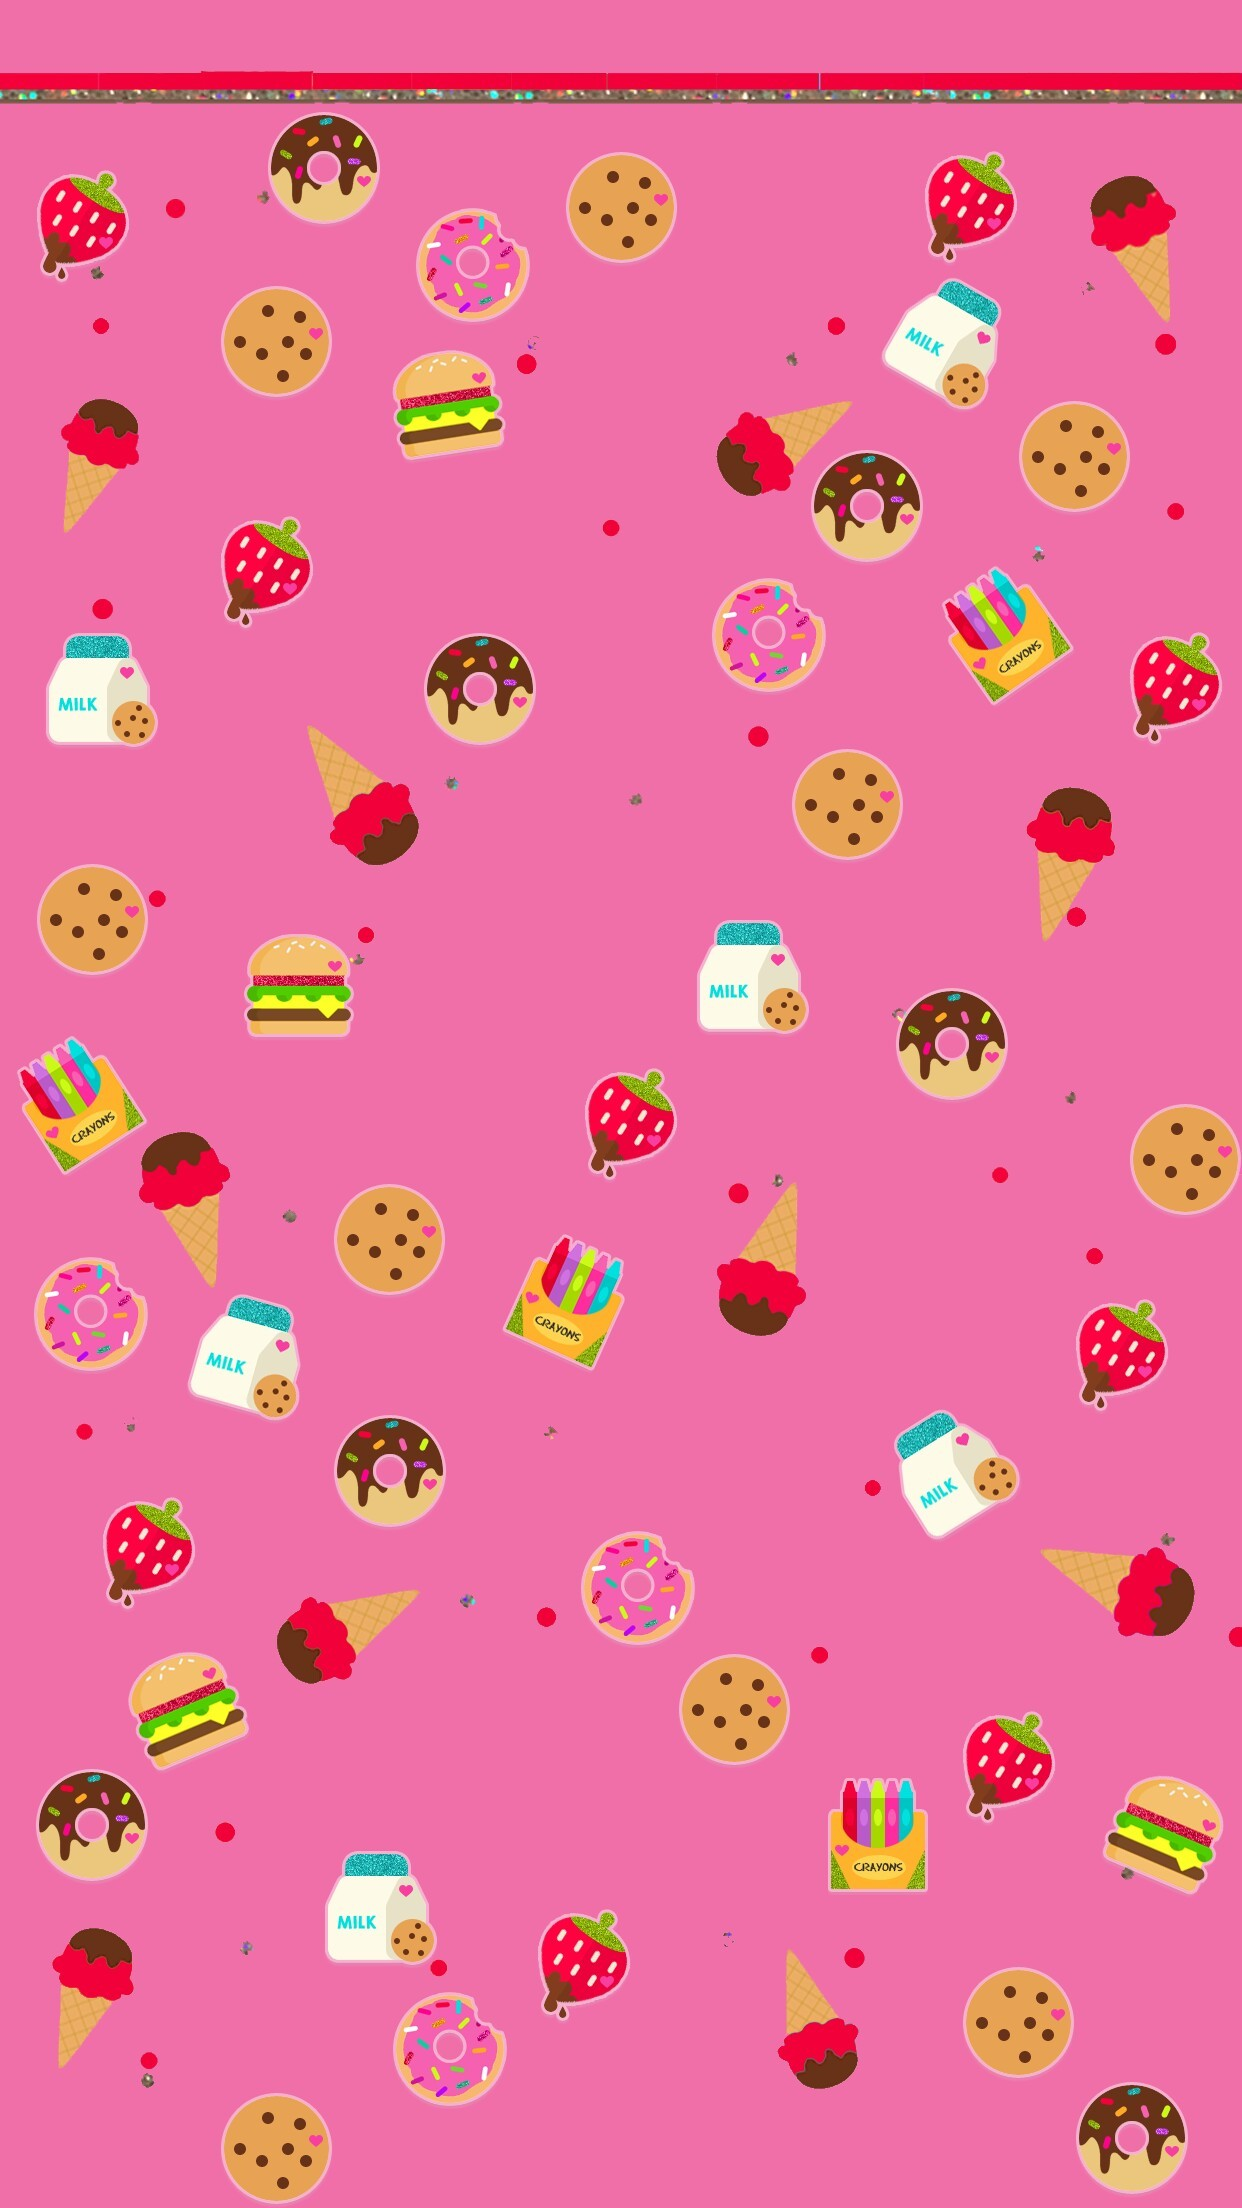 Emoji wallpapers girly 61 images - Cute wallpapers ...